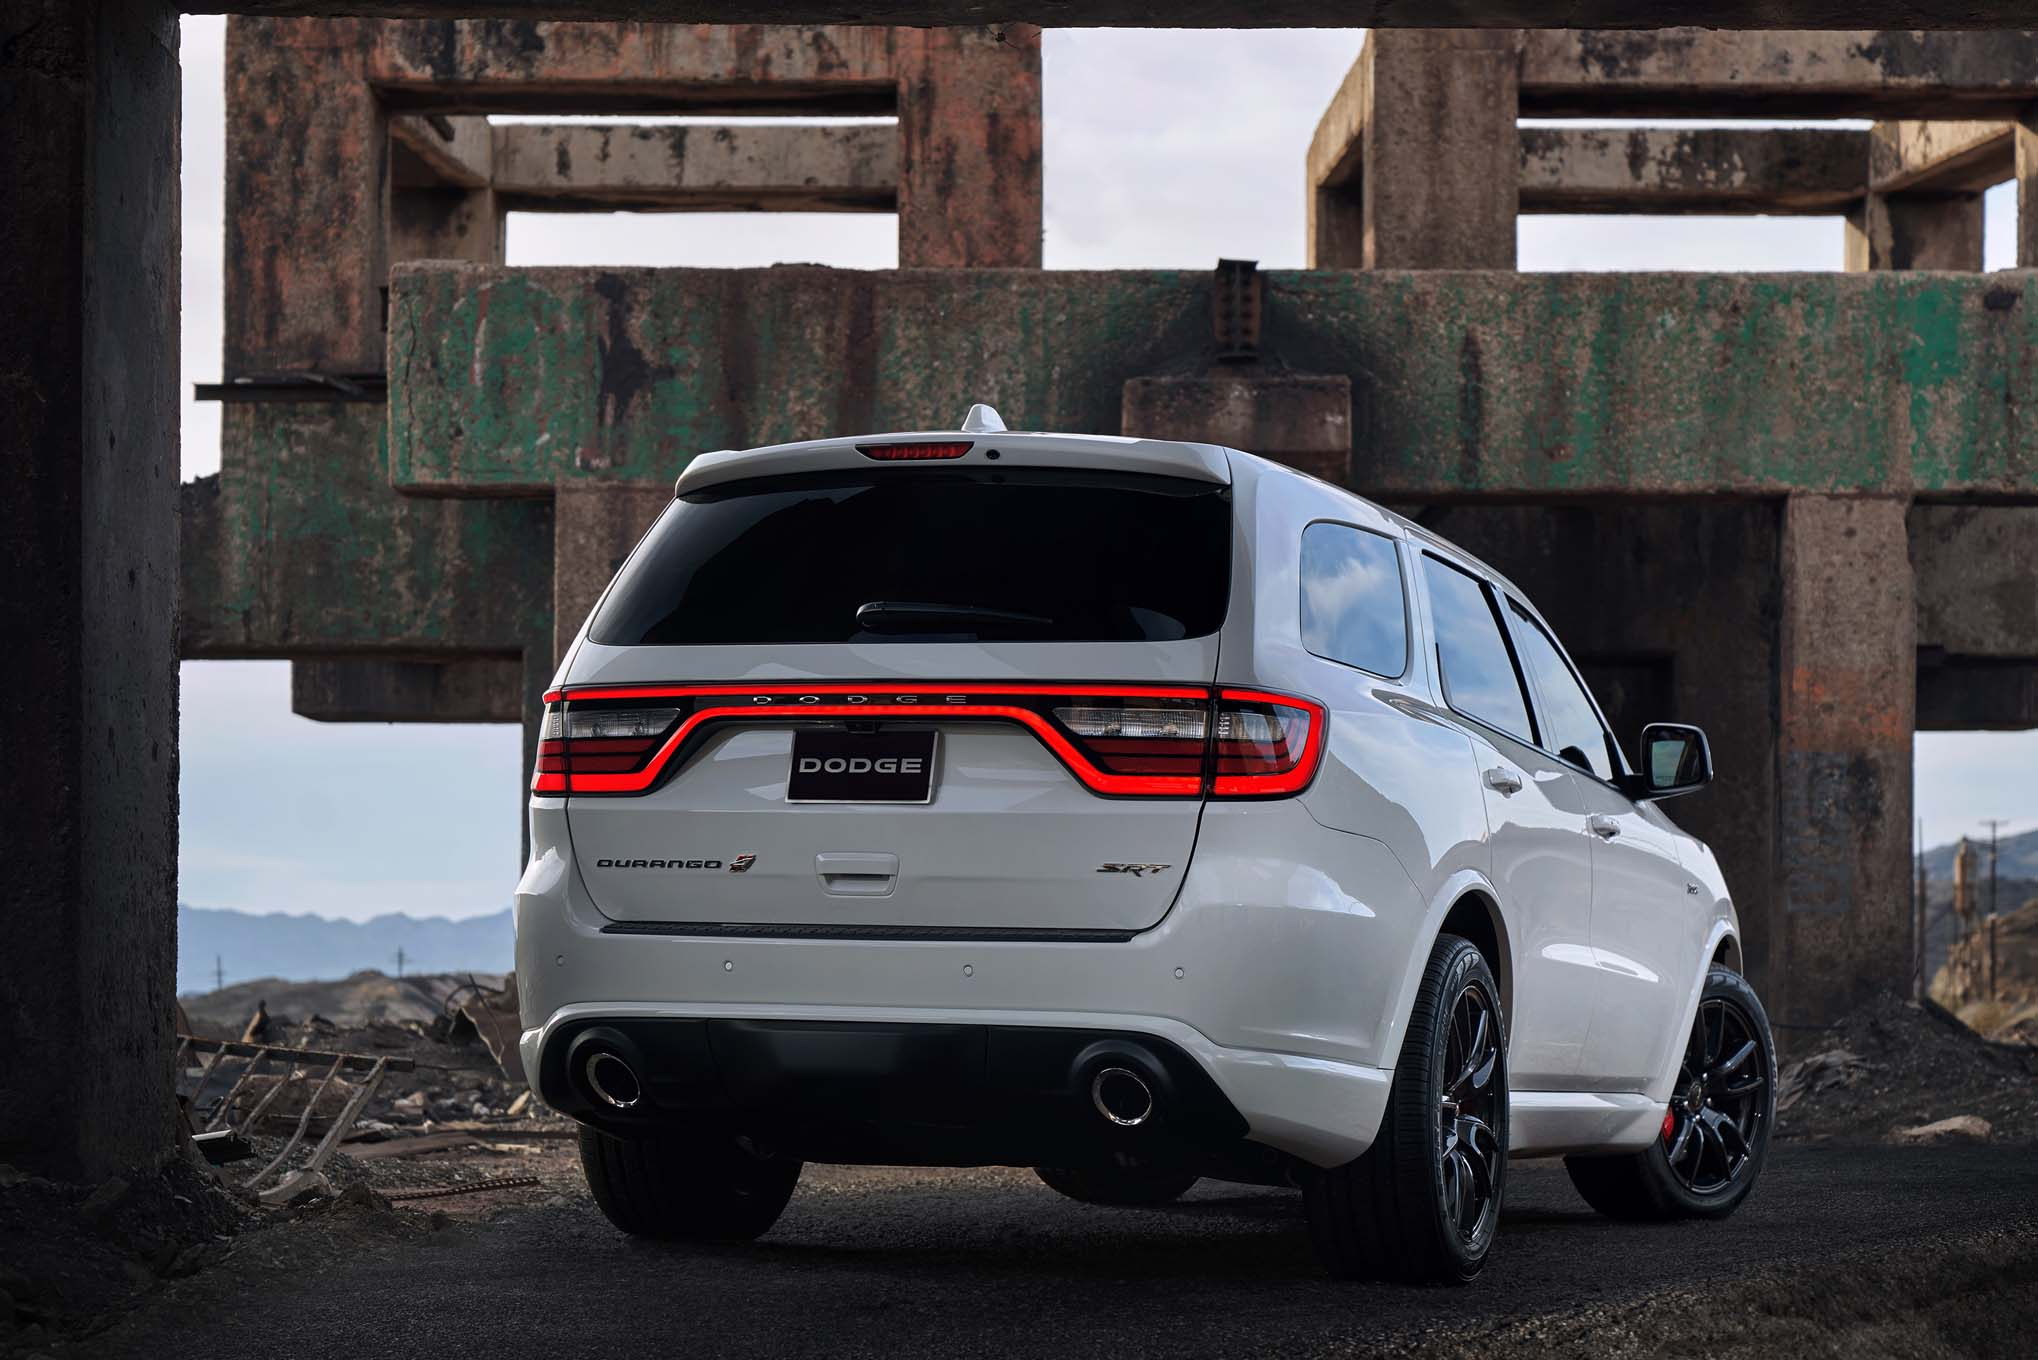 2018 dodge srt. modren dodge as a nice bonus dodge says customers who buy 2018 durango srt  in dodge srt i